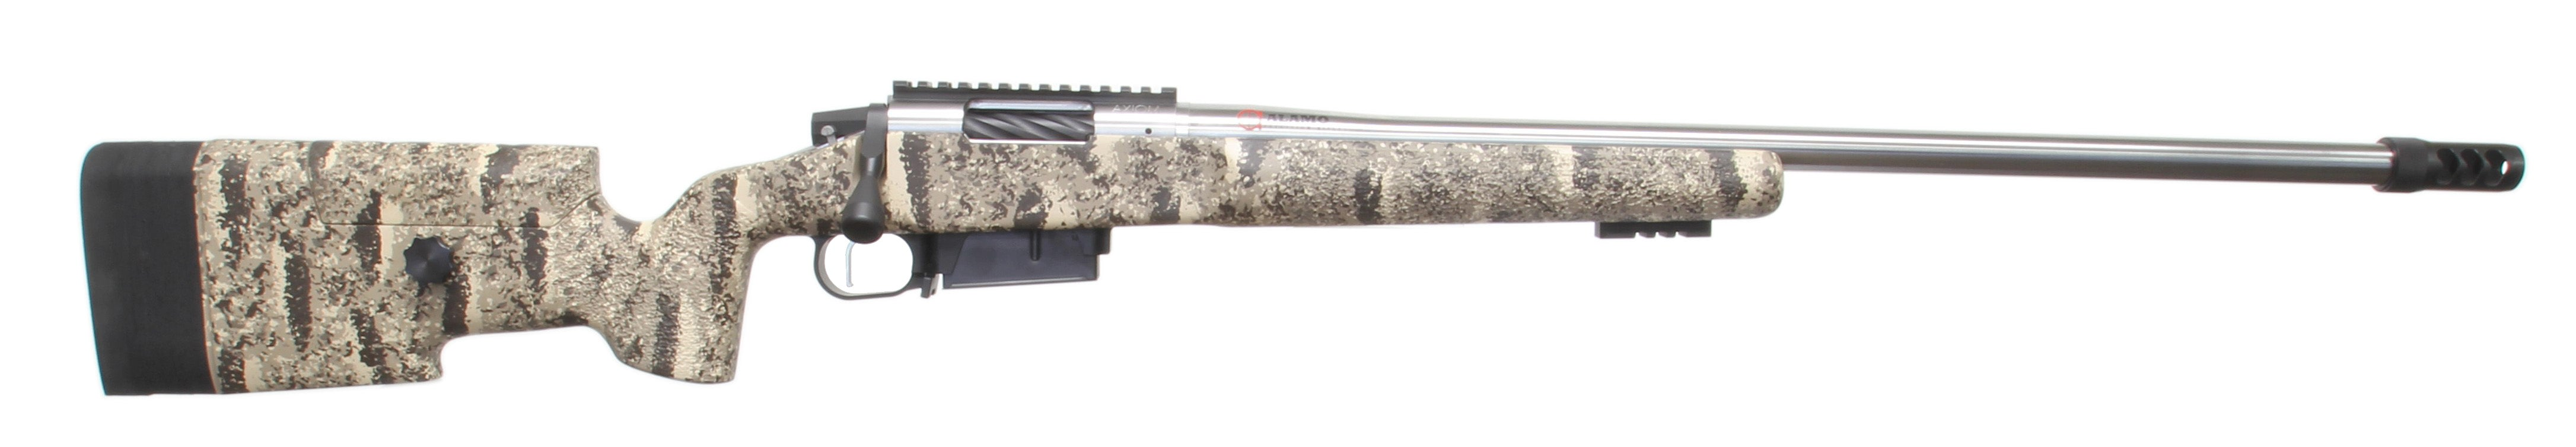 APR Custom 6.5 Creedmoor